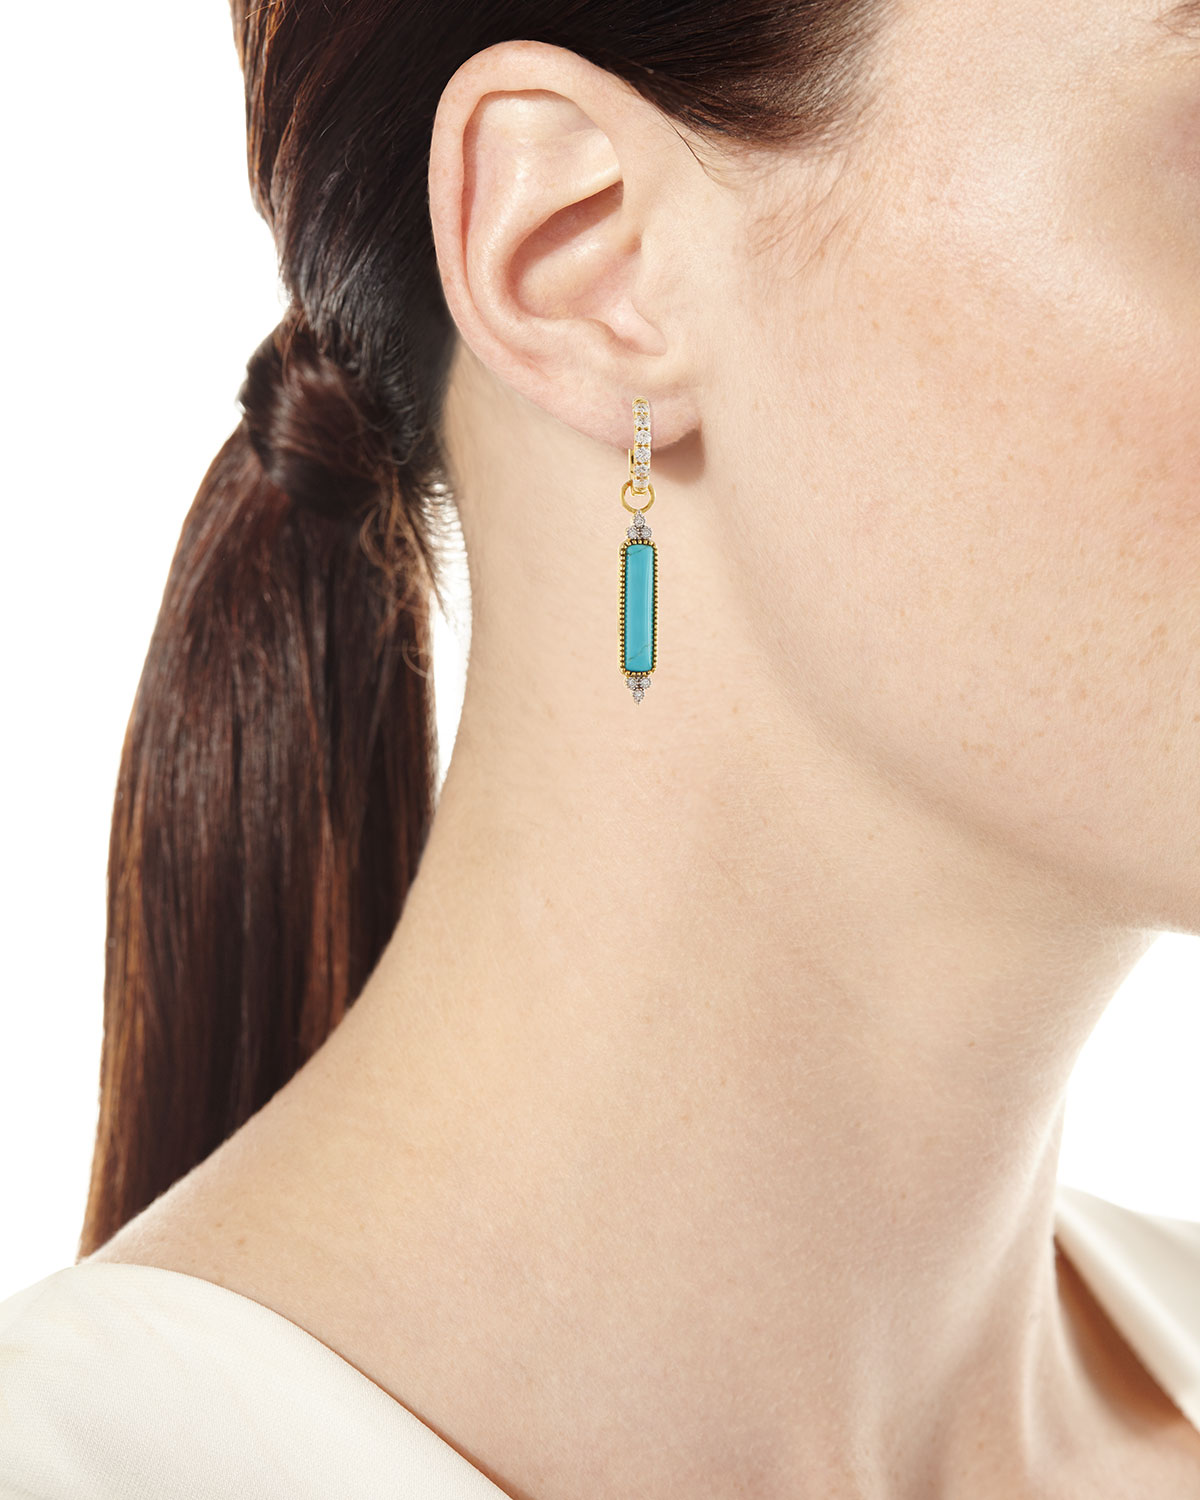 Jude Frances 18k Lisse Inverted Turquoise Earring Charms TMCINv4